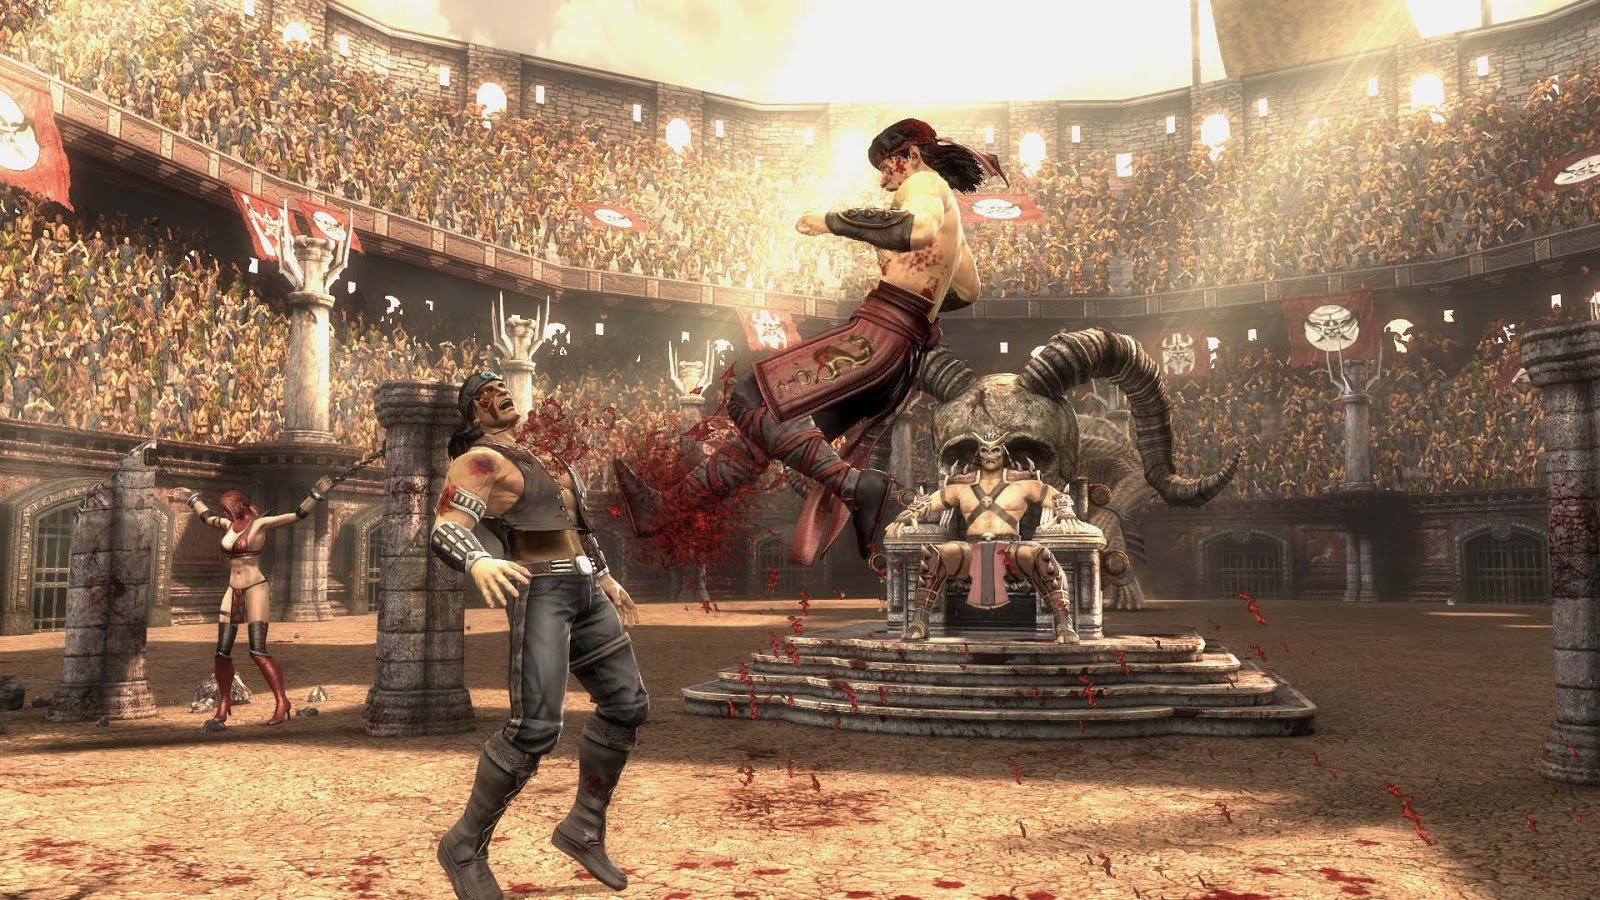 Mortal-Kombat-Komplete-Edition-Screenshot-Gameplay-4